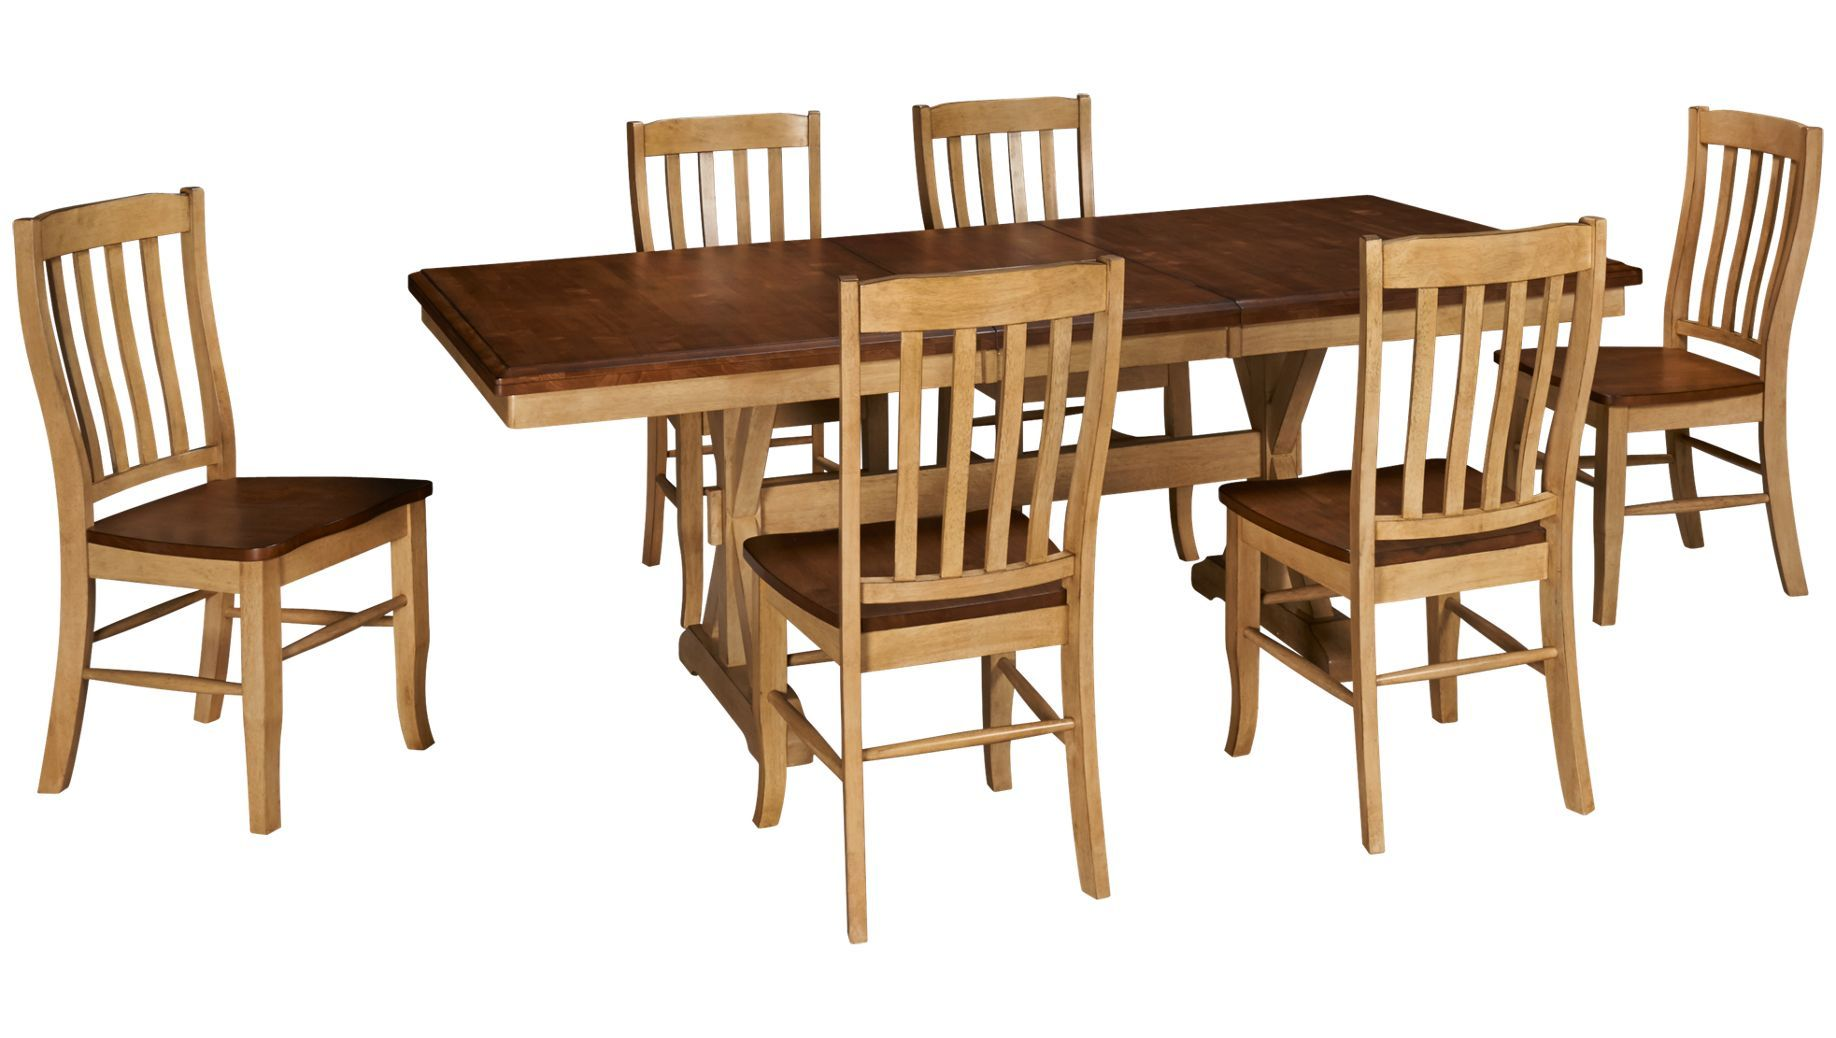 napoleon hardwood tables with ebony offers finished barstools and legs quails from turned chairs finishes in furniture heavy crafted only barstool thick inch solid run by winners tops